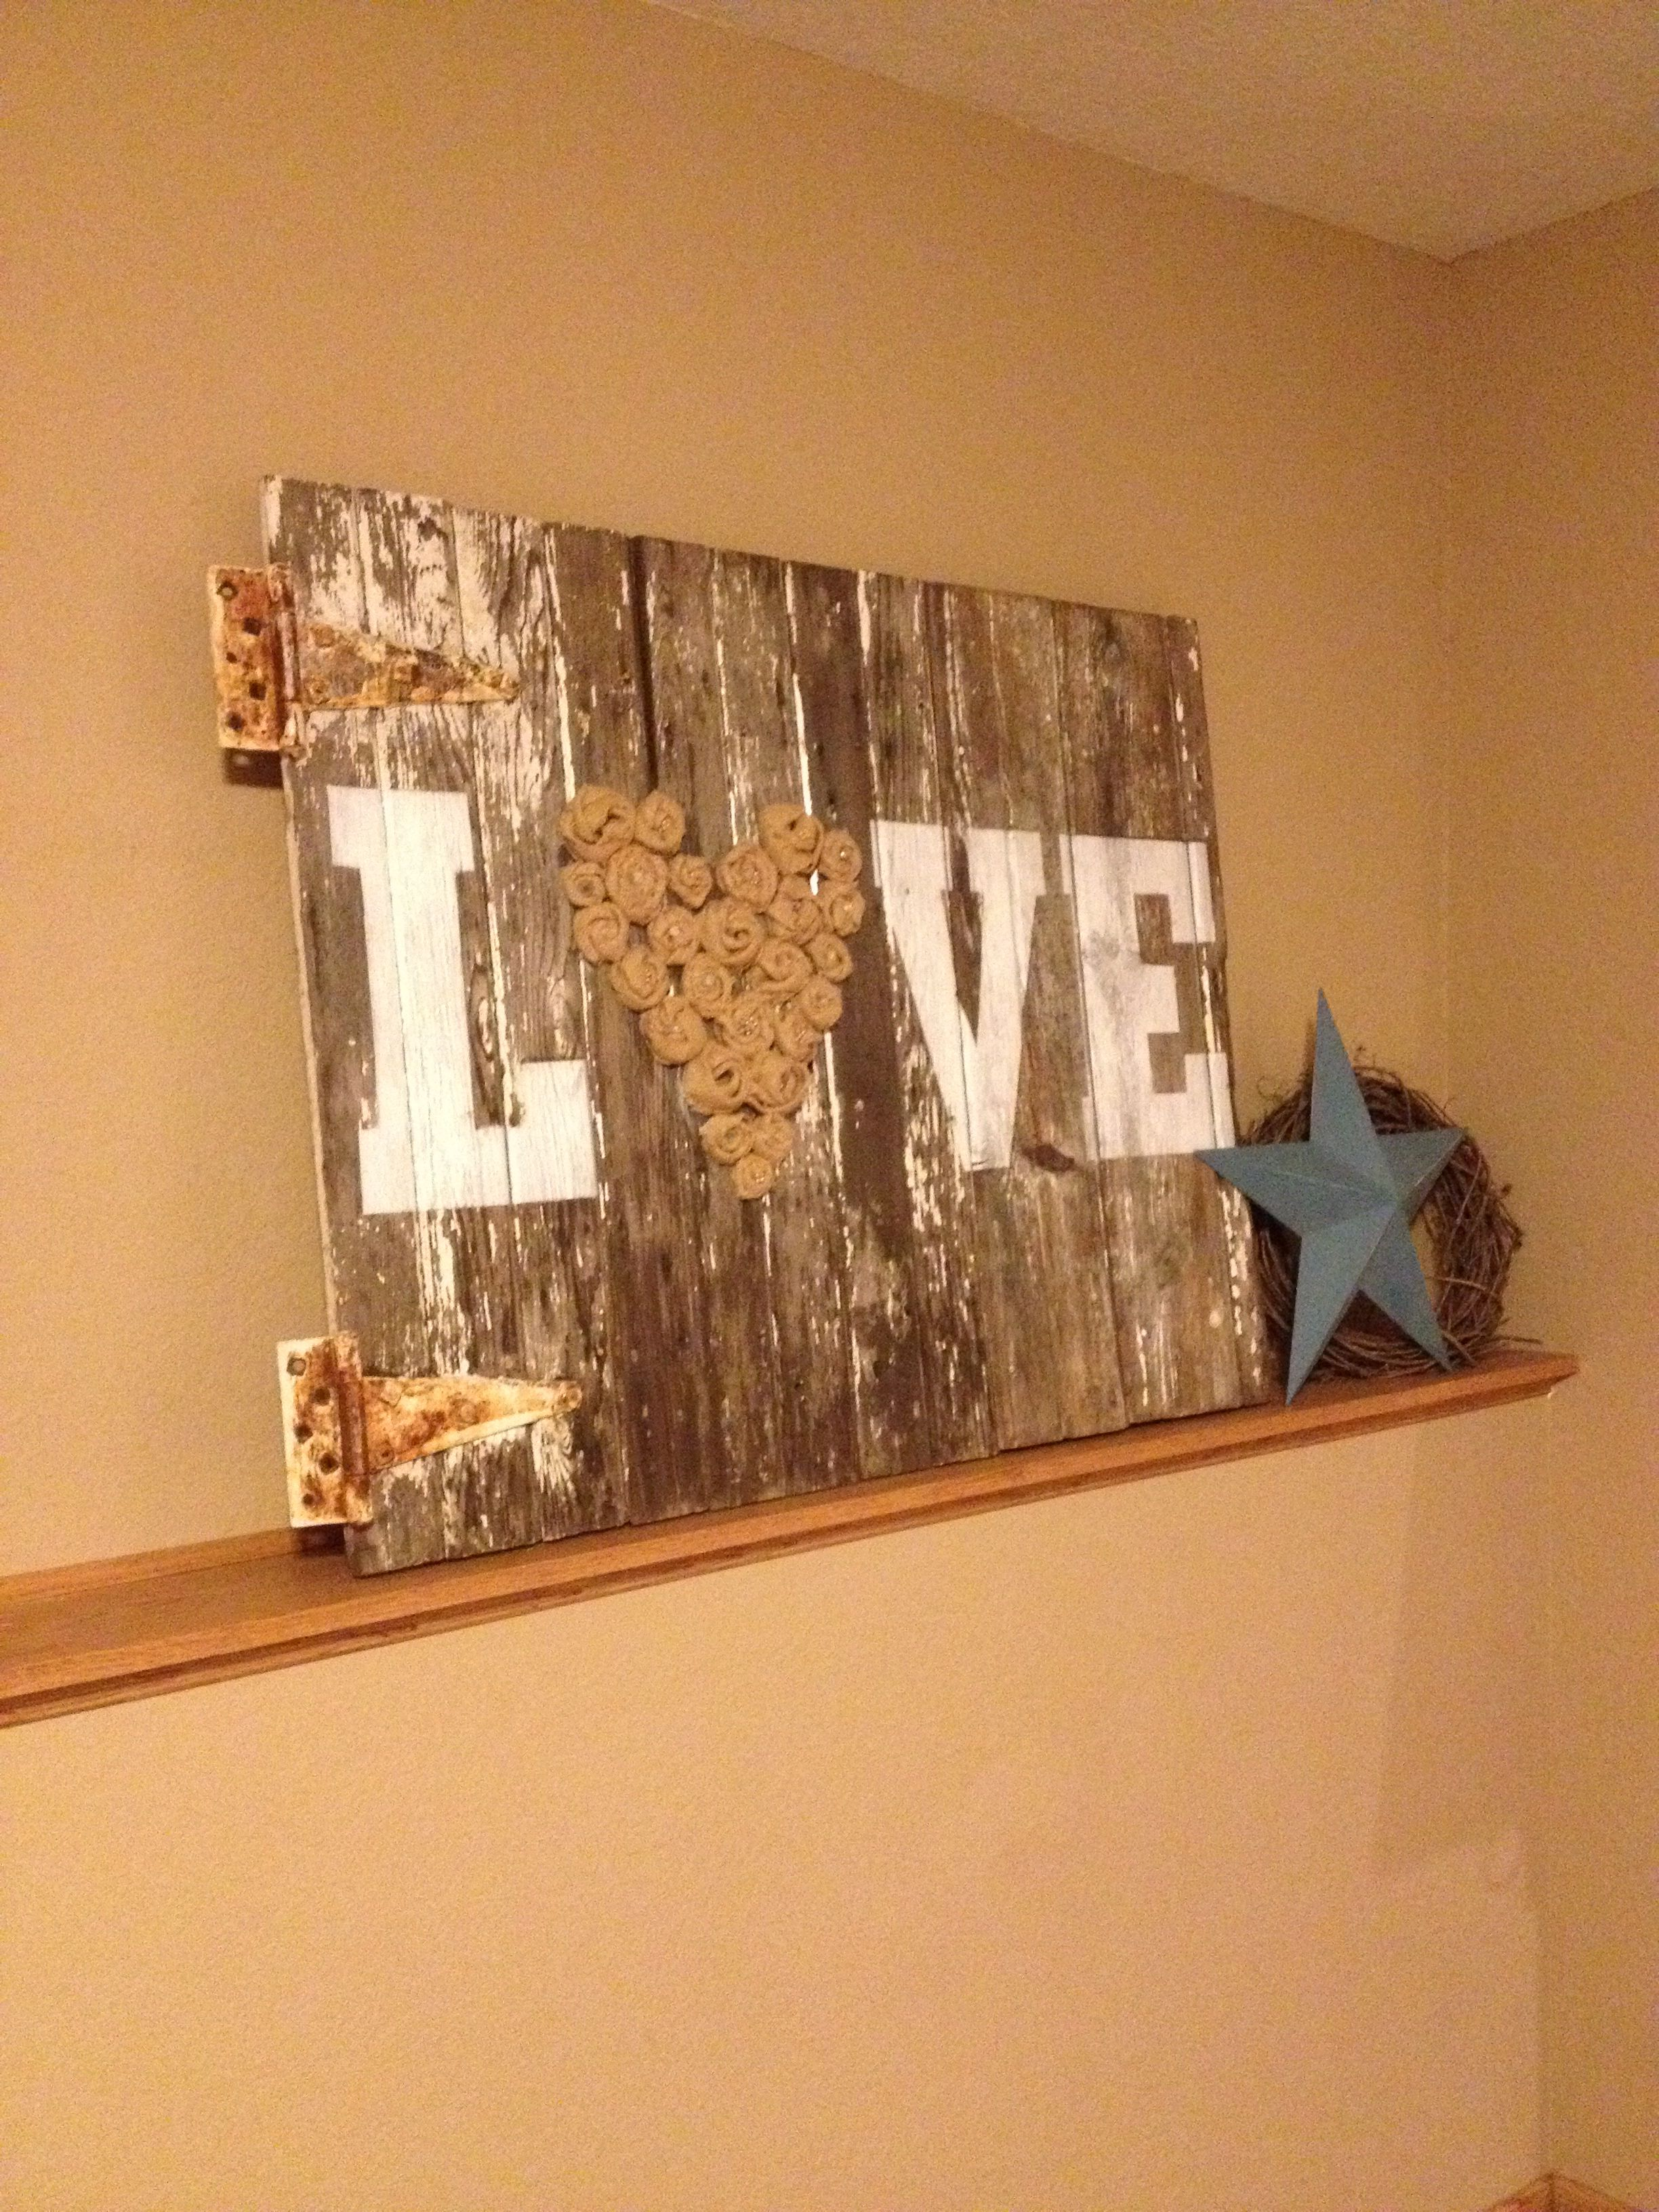 Barn Wood Decor Signs: Decorating Ideas And Improvements